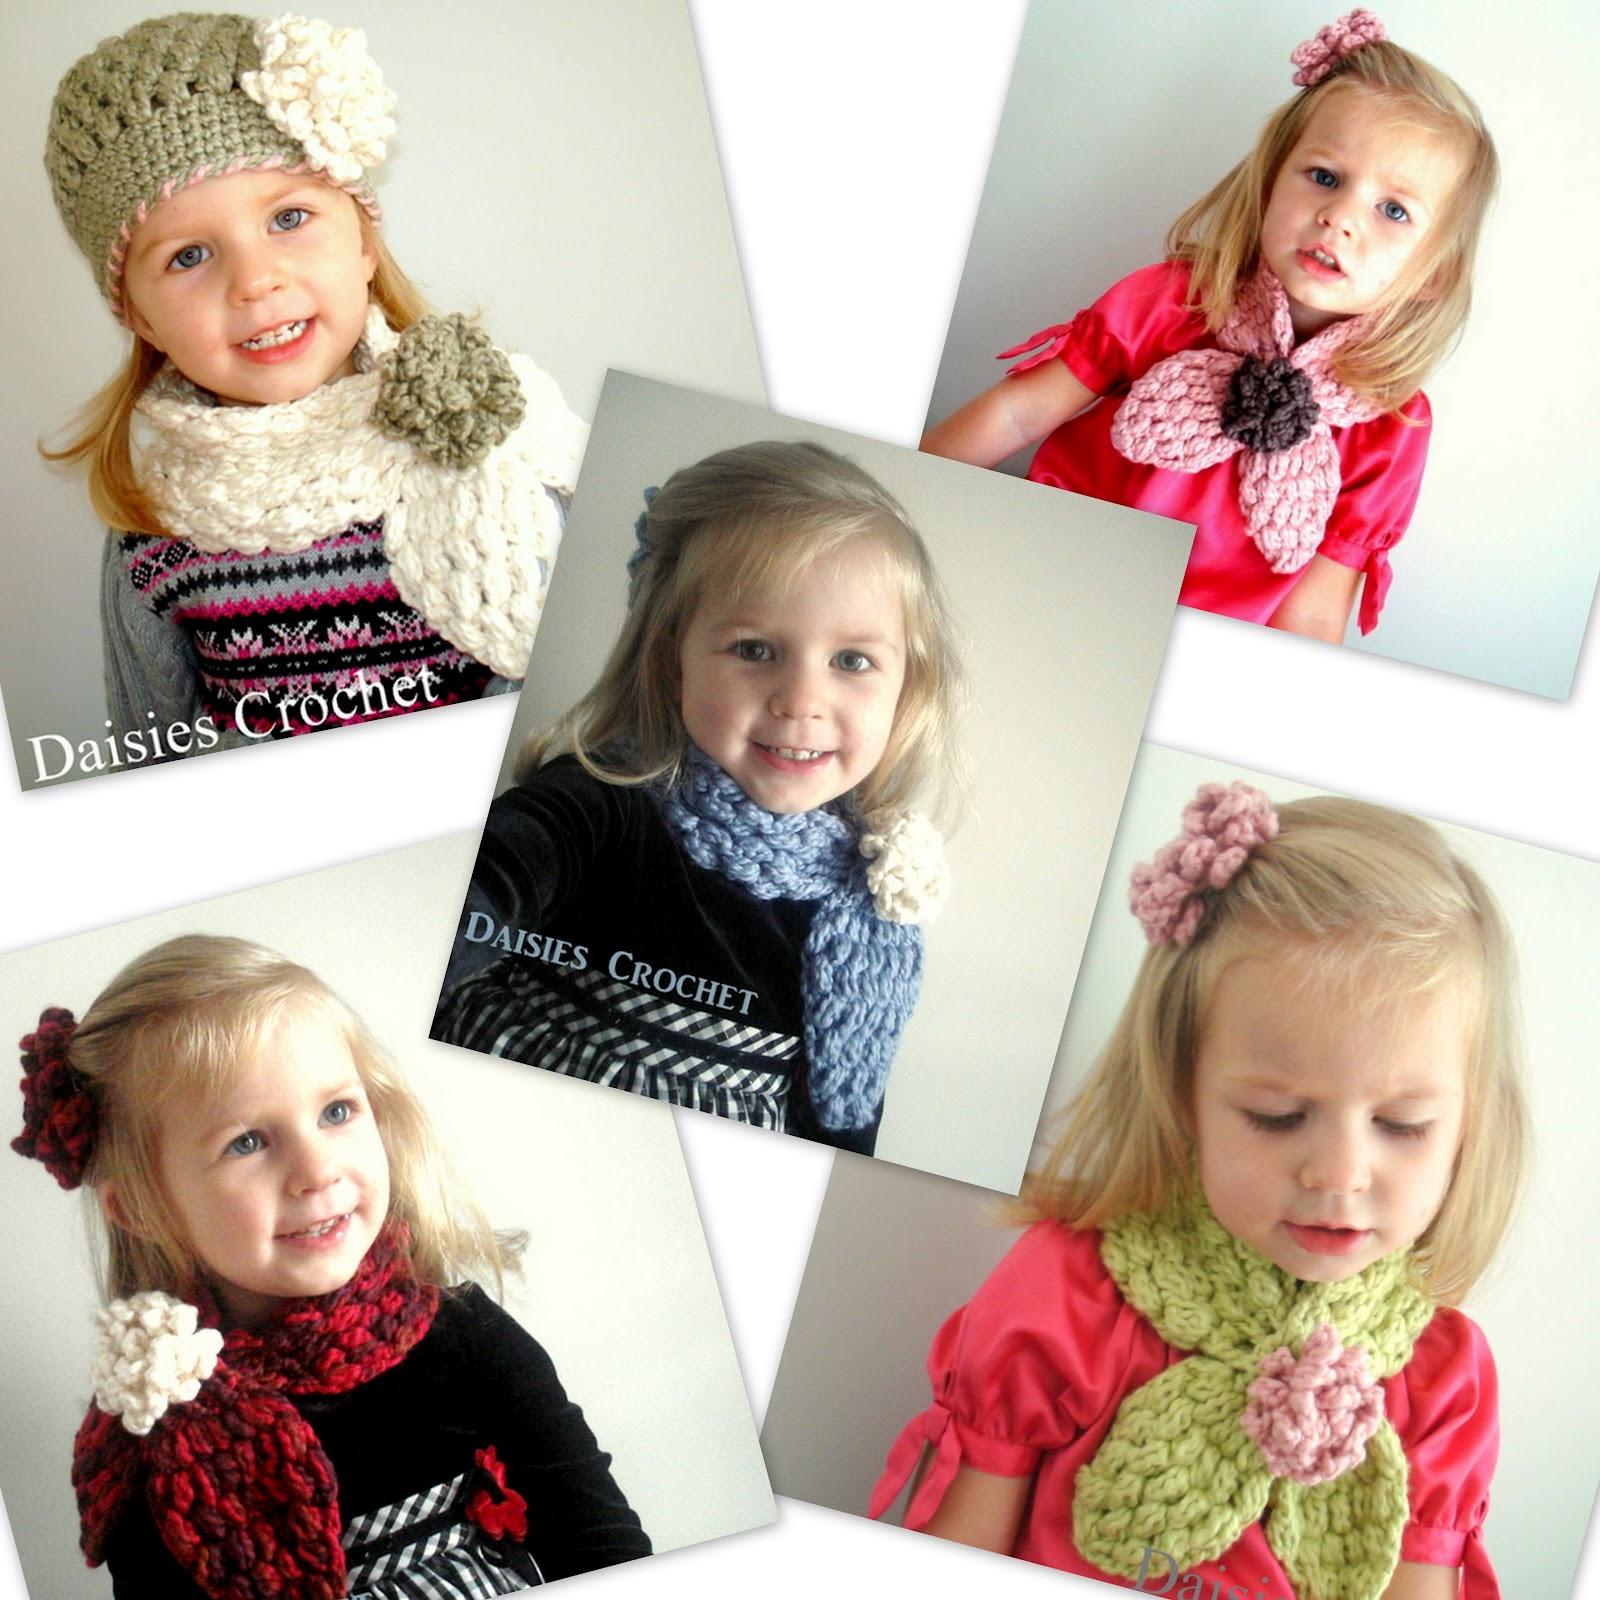 Daisies Crochet: Crochet 2 pdf patterns PUFFER HAT and SCARF set.